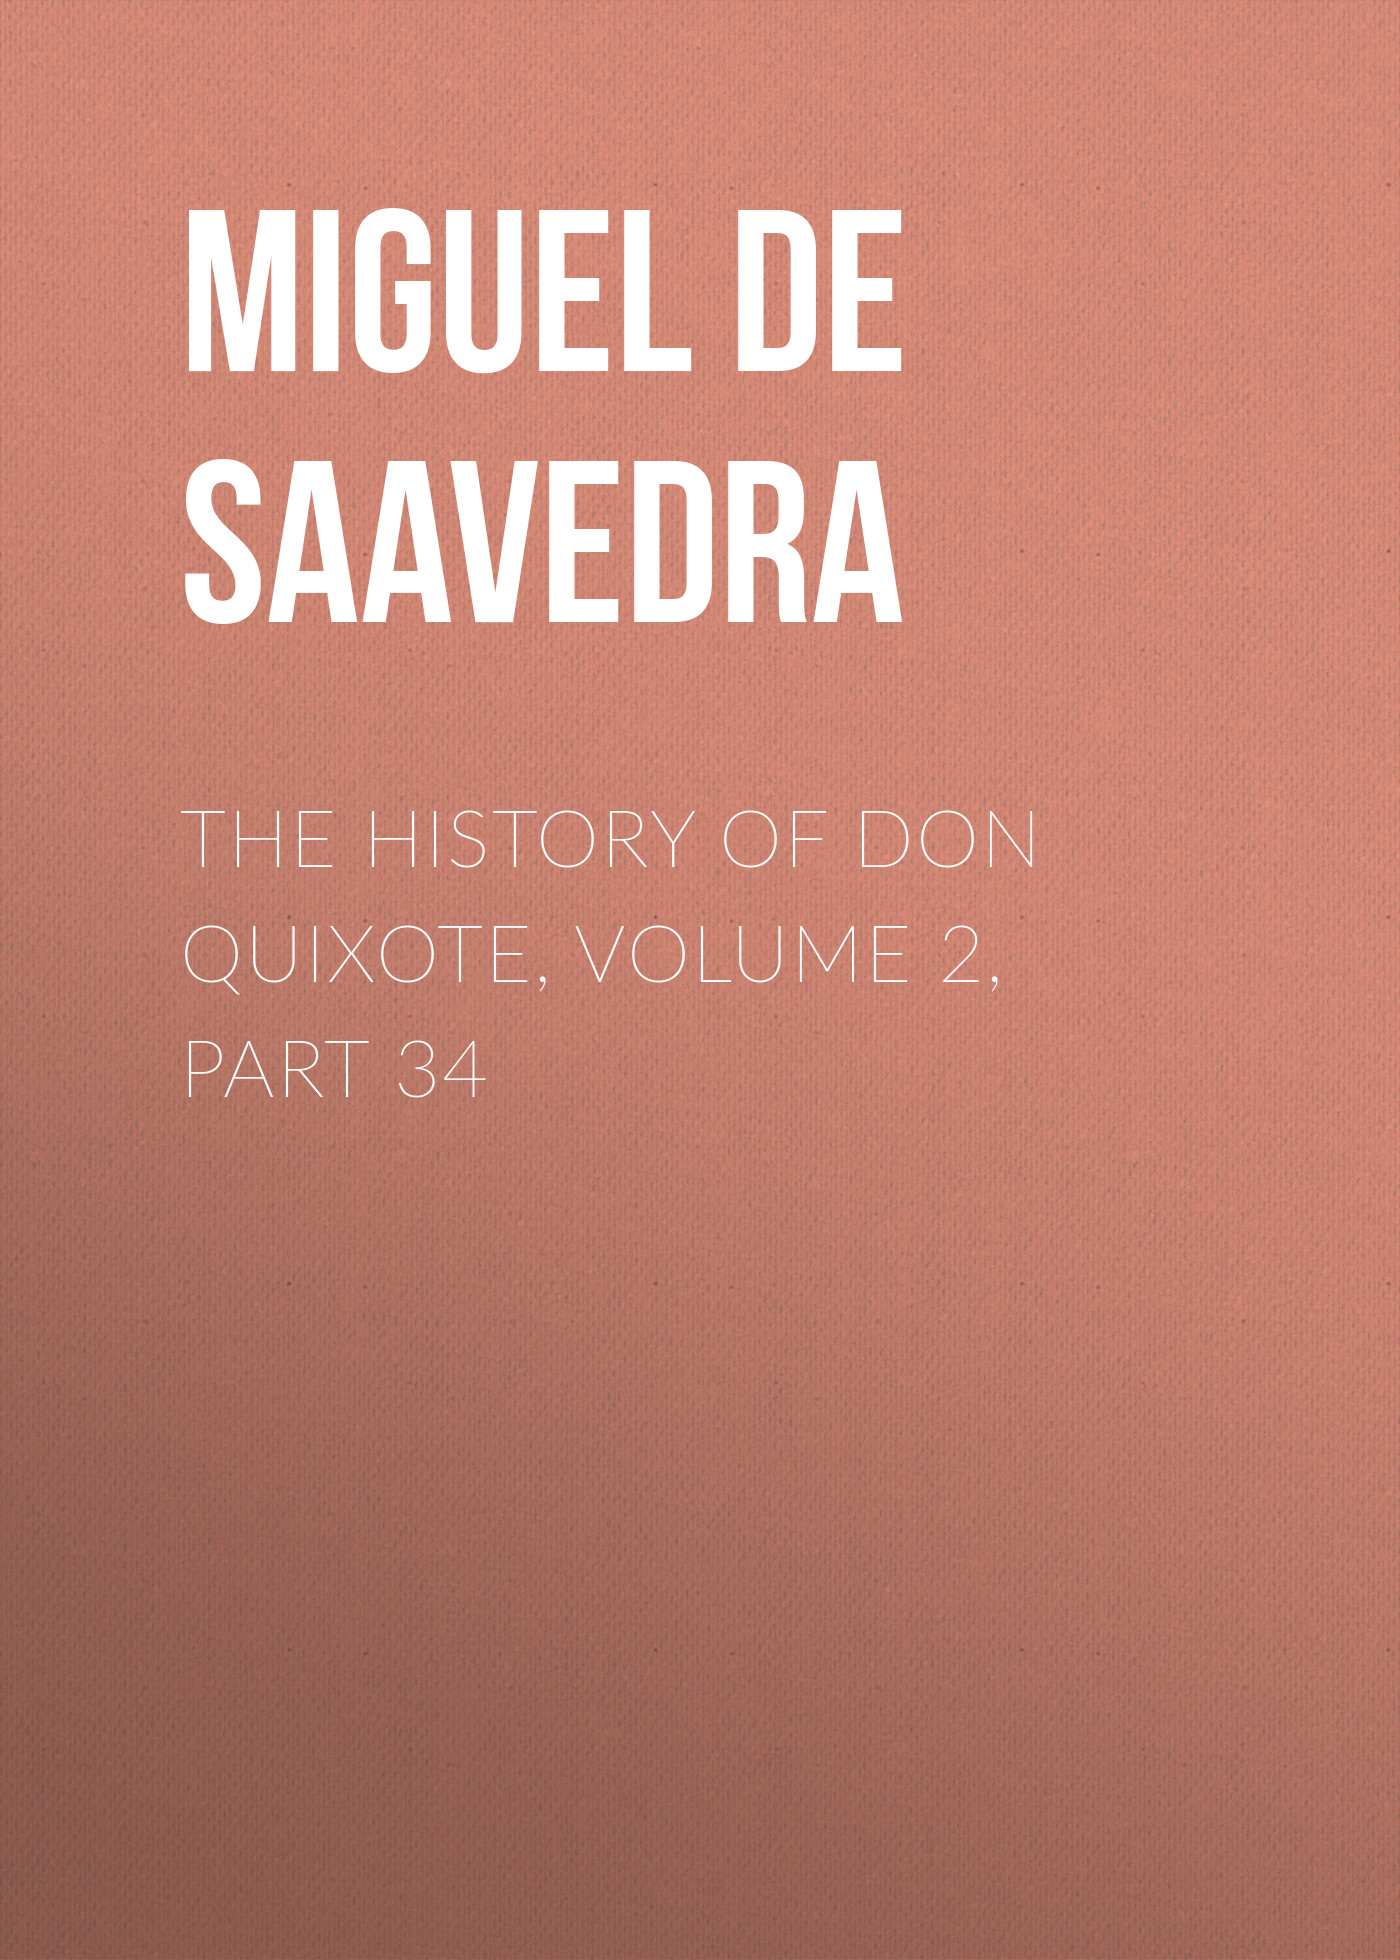 the history of don quixote volume 2 part 34